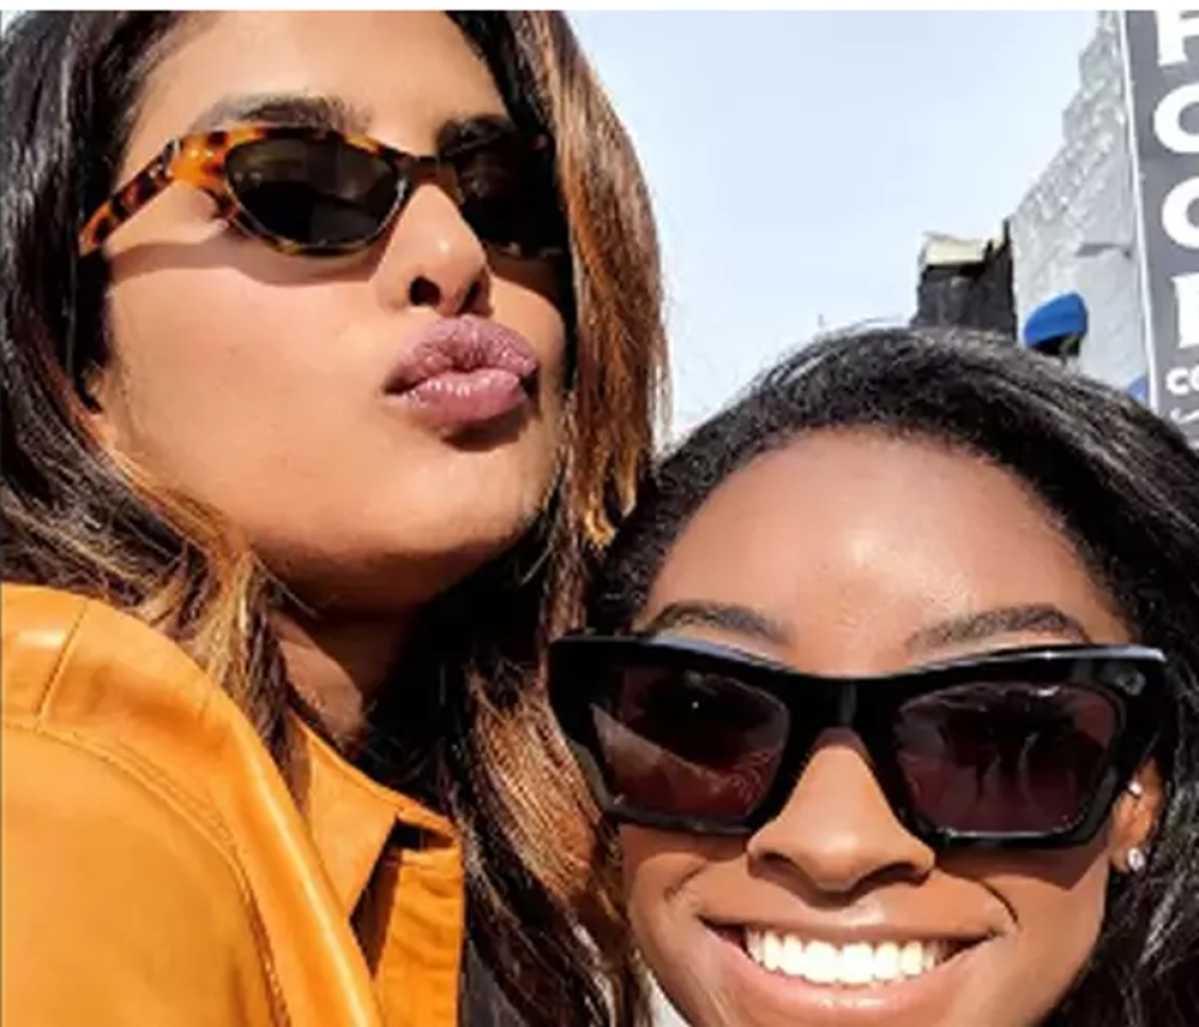 Priyanka Chopra to host Olympic gold medallist Simone Biles as the first guest on her YouTube show